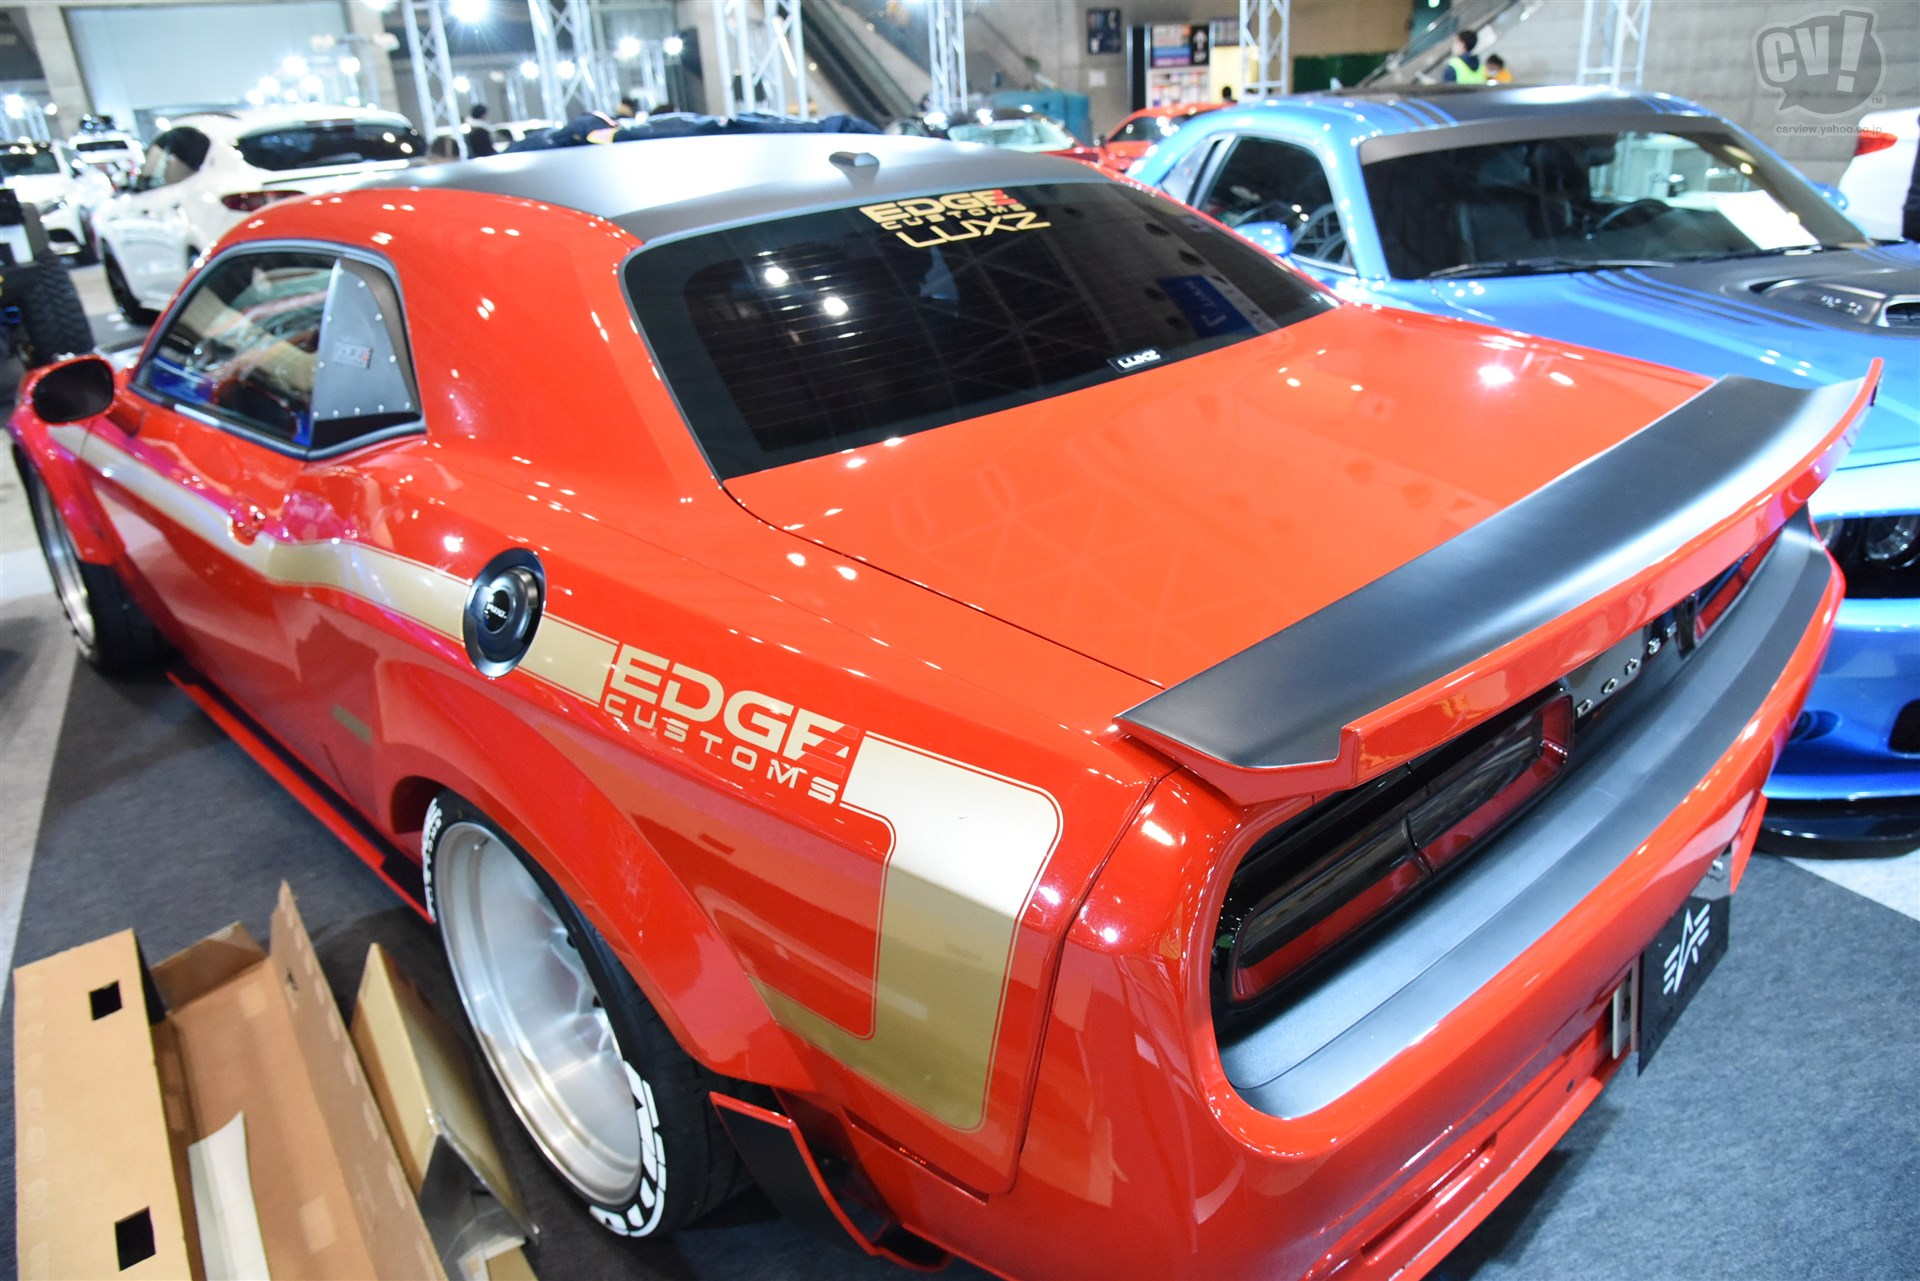 EDGE CUSTOMS DODGE CHALLENGER RTシェイカー